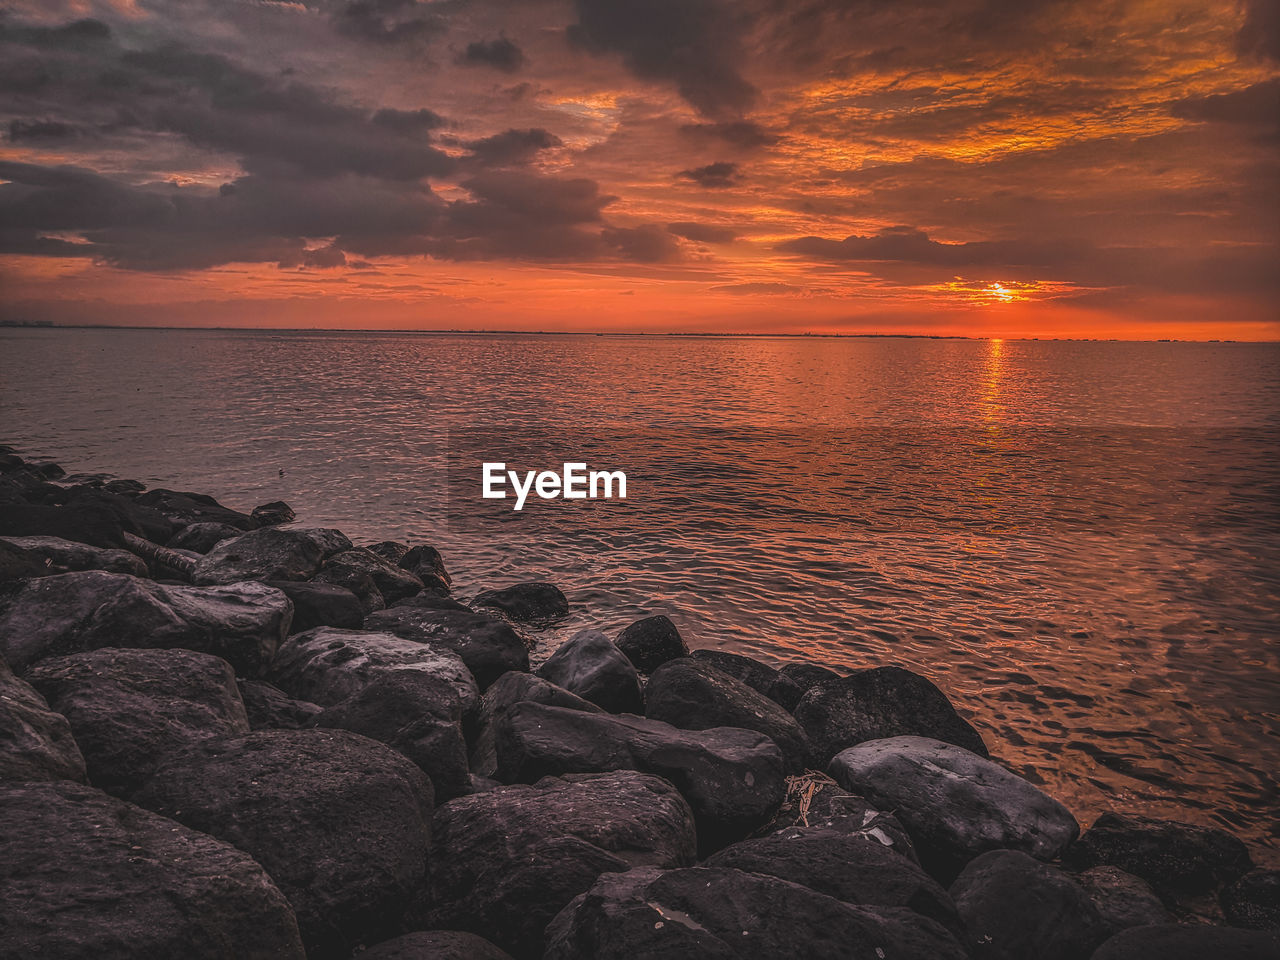 sky, sea, water, sunset, beauty in nature, scenics - nature, rock, solid, horizon, cloud - sky, horizon over water, rock - object, tranquility, tranquil scene, idyllic, orange color, beach, nature, no people, pebble, rocky coastline